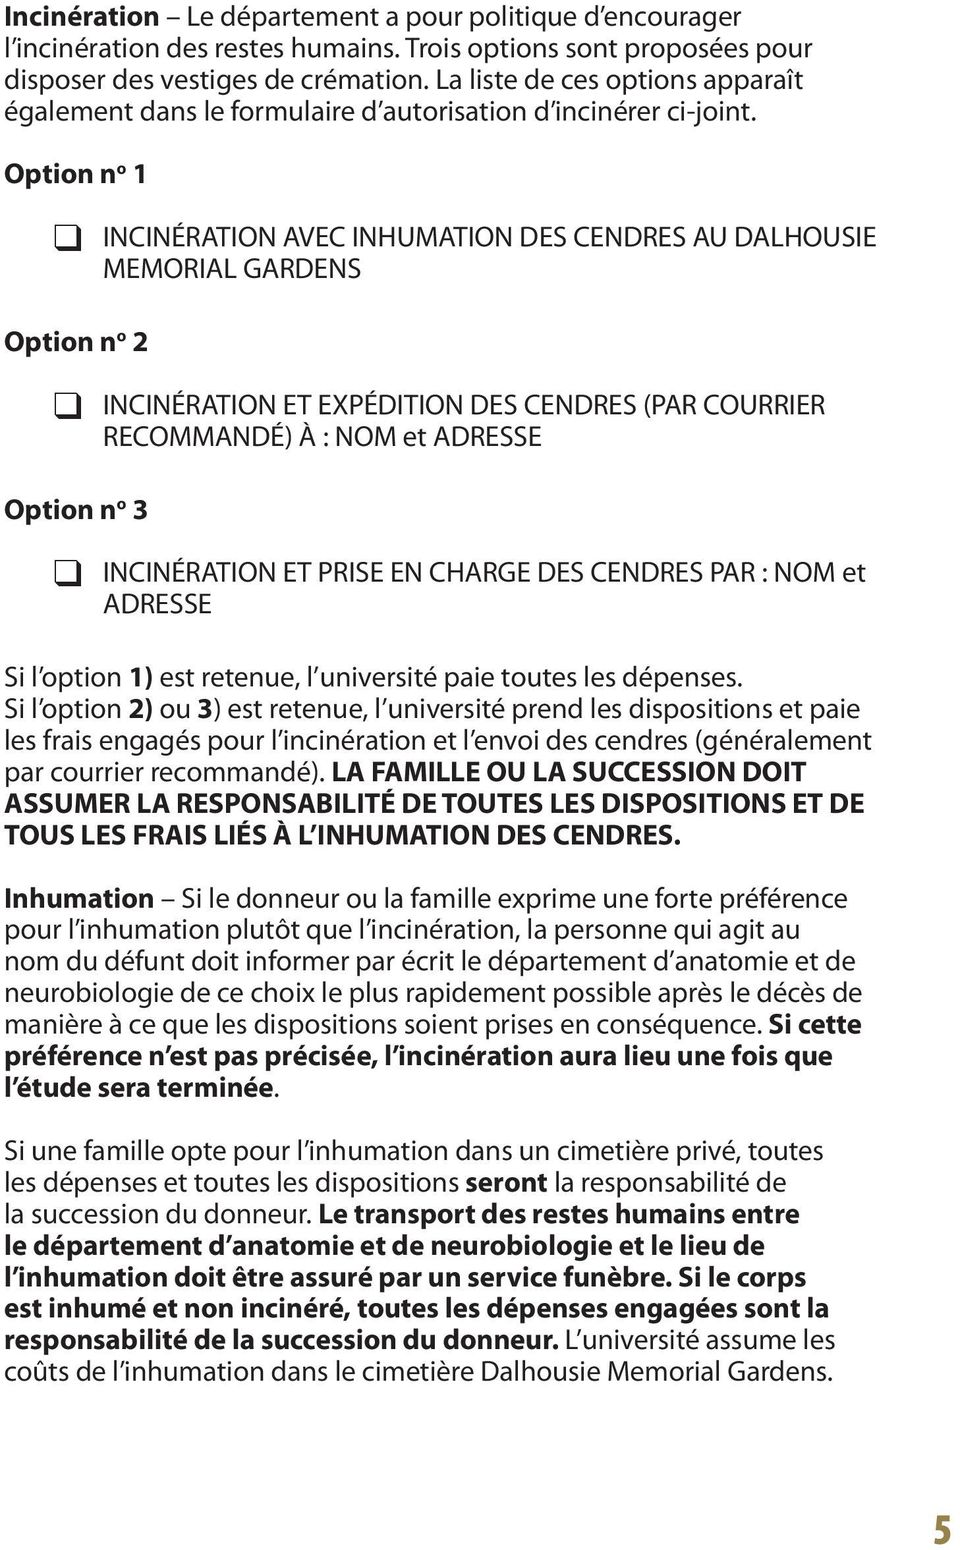 Option n o 1 INCINÉRATION AVEC INHUMATION DES CENDRES AU DALHOUSIE MEMORIAL GARDENS Option n o 2 INCINÉRATION ET EXPÉDITION DES CENDRES (PAR COURRIER RECOMMANDÉ) À : NOM et ADRESSE Option n o 3